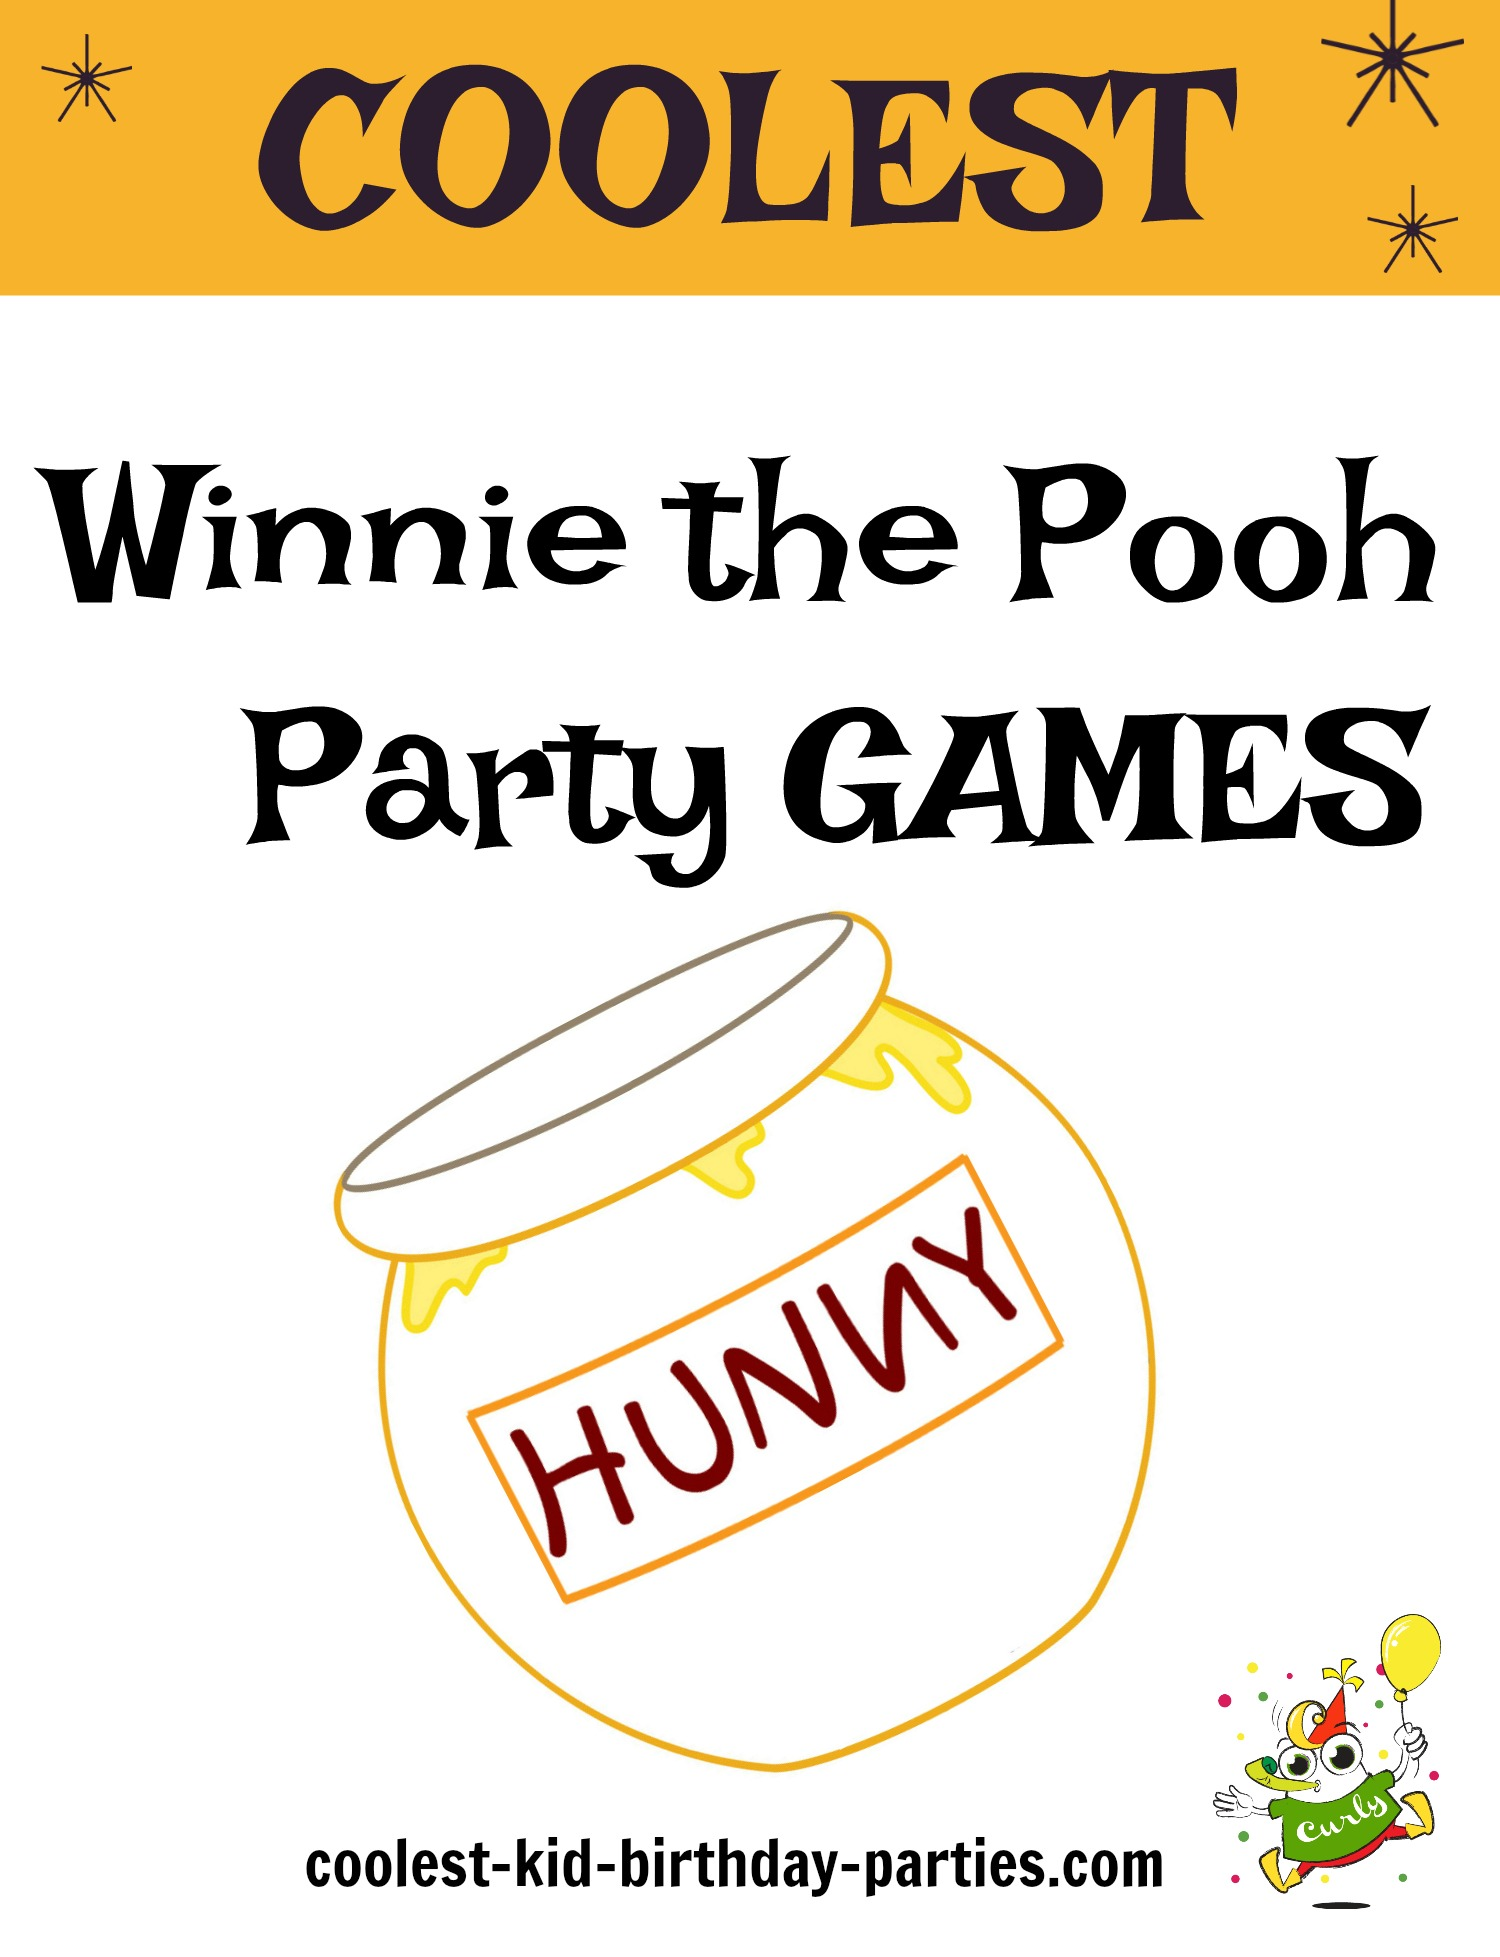 Coolest Winnie The Pooh Games For An Awesome Winnie Theme Party